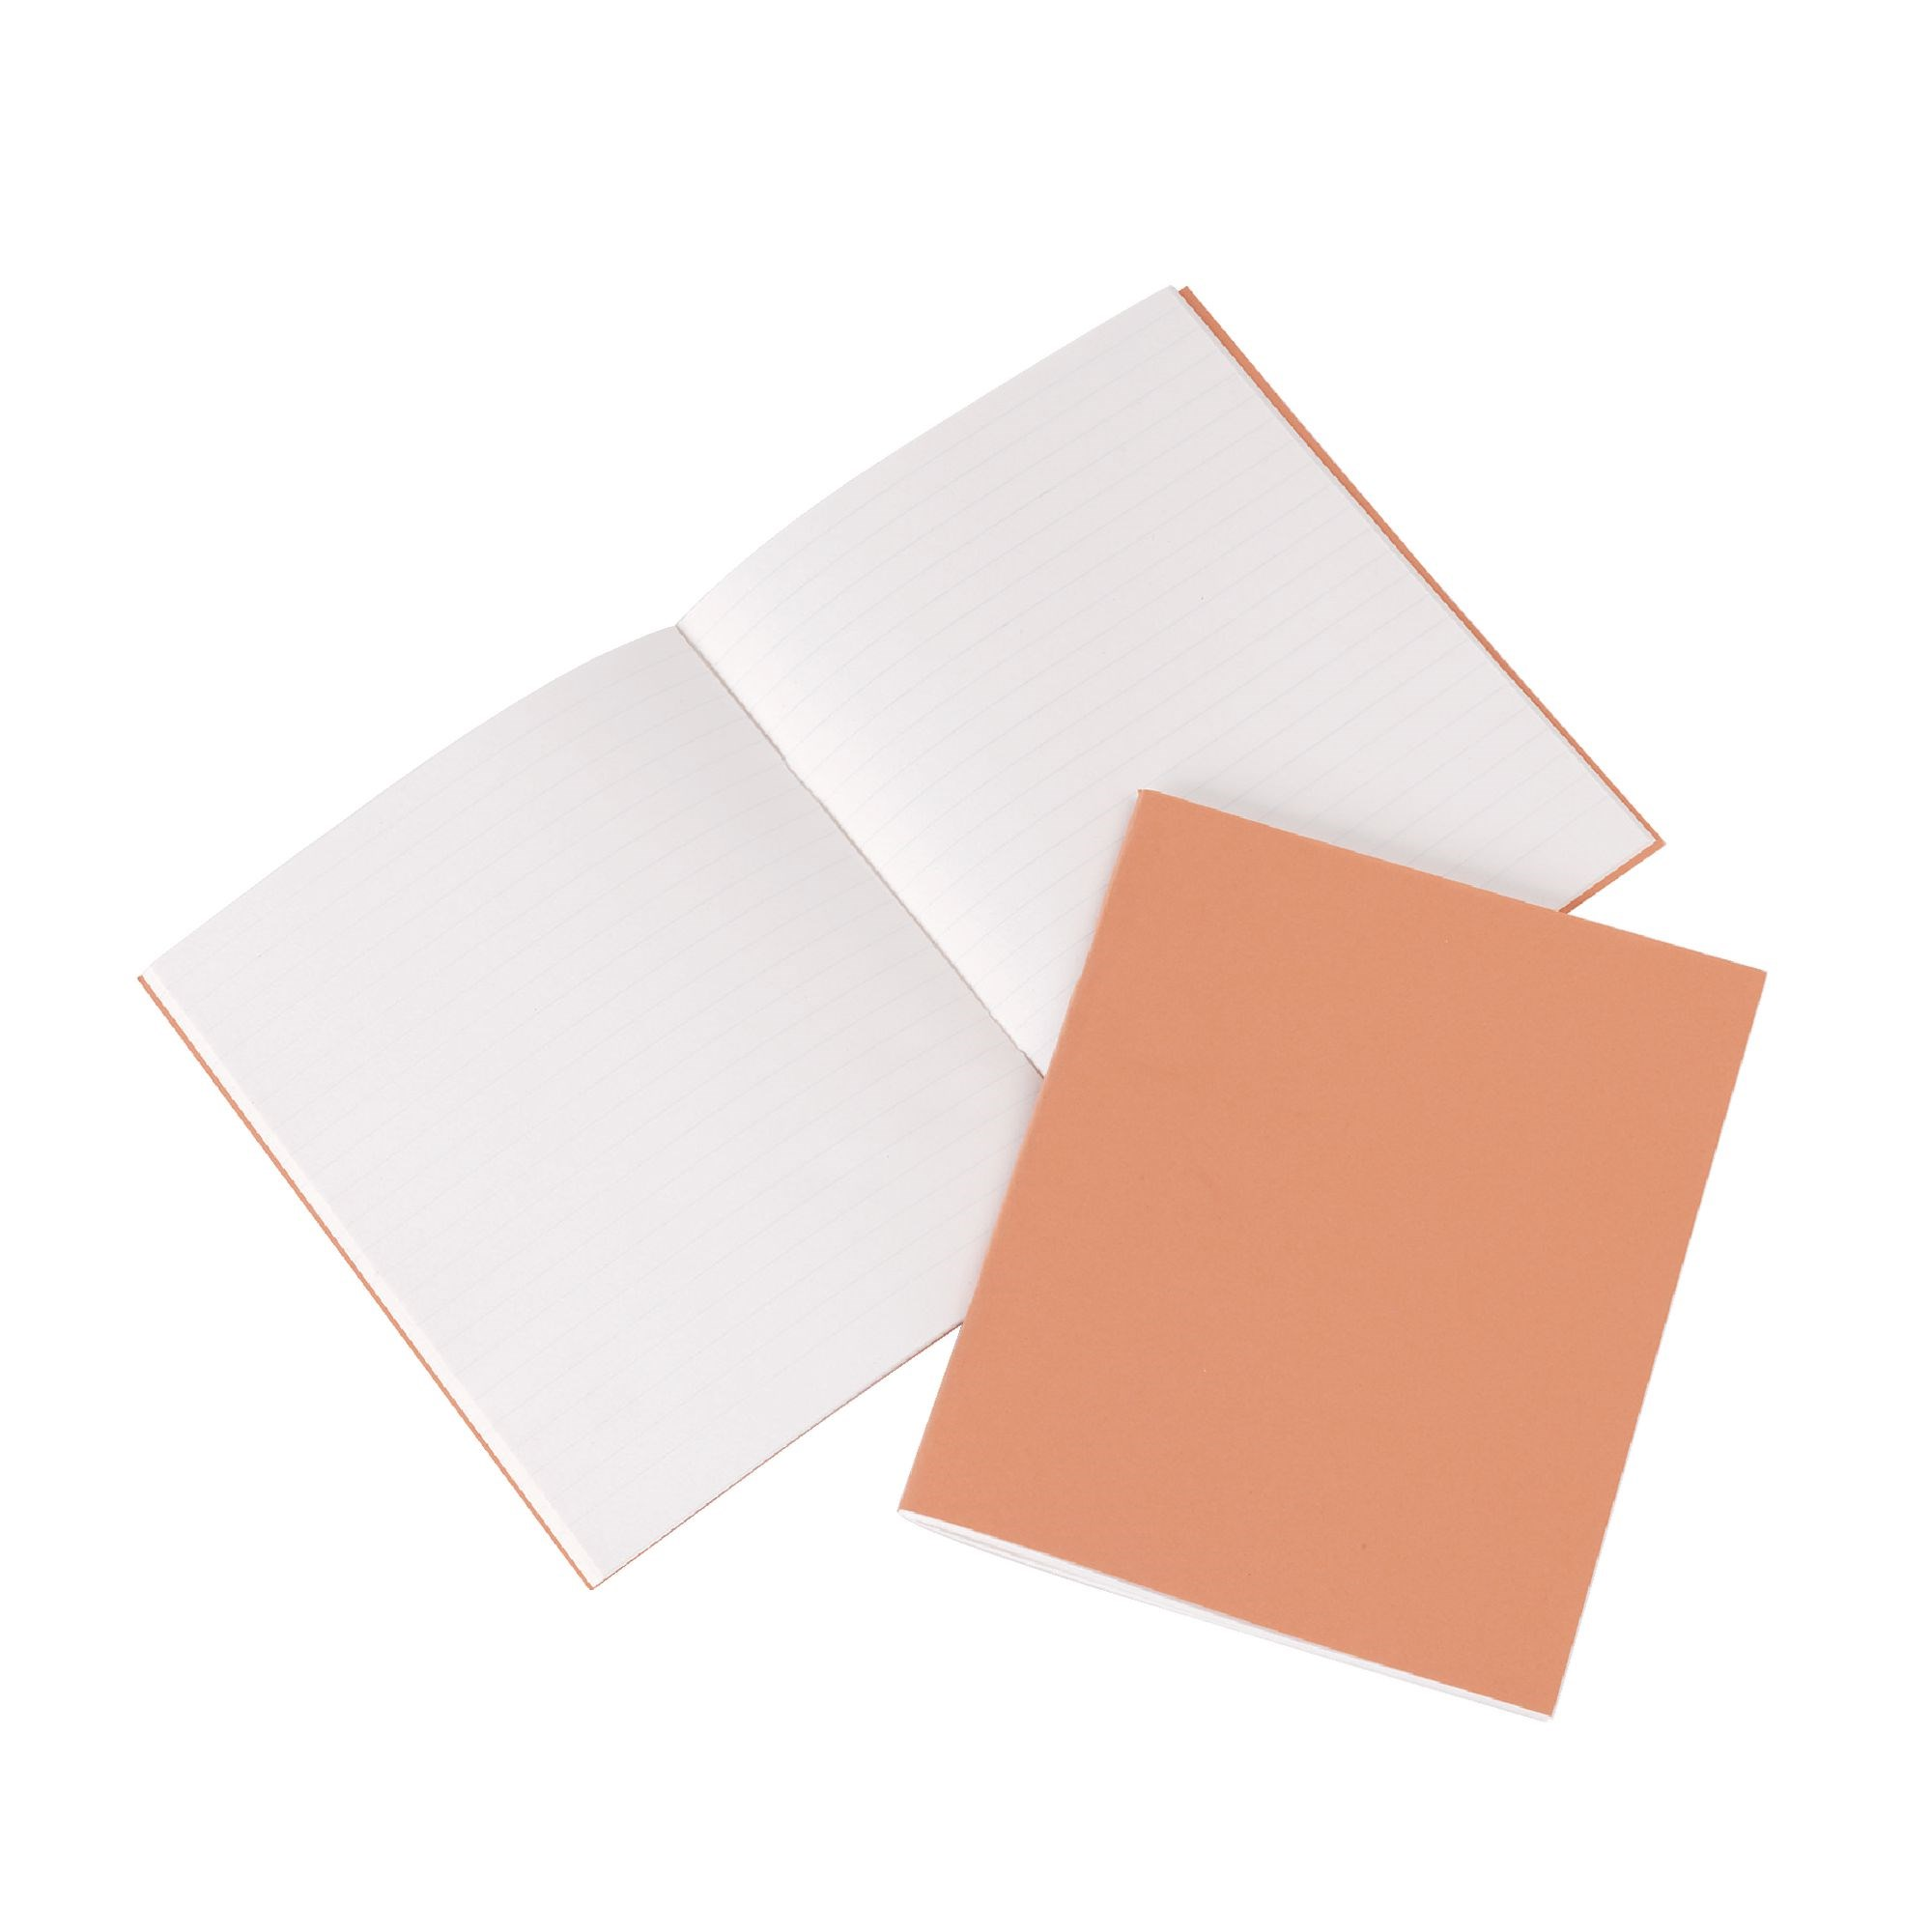 Classmates Orange 203 x 165mm Notebook 48 Pages 8mm Ruled (Pack of 100)